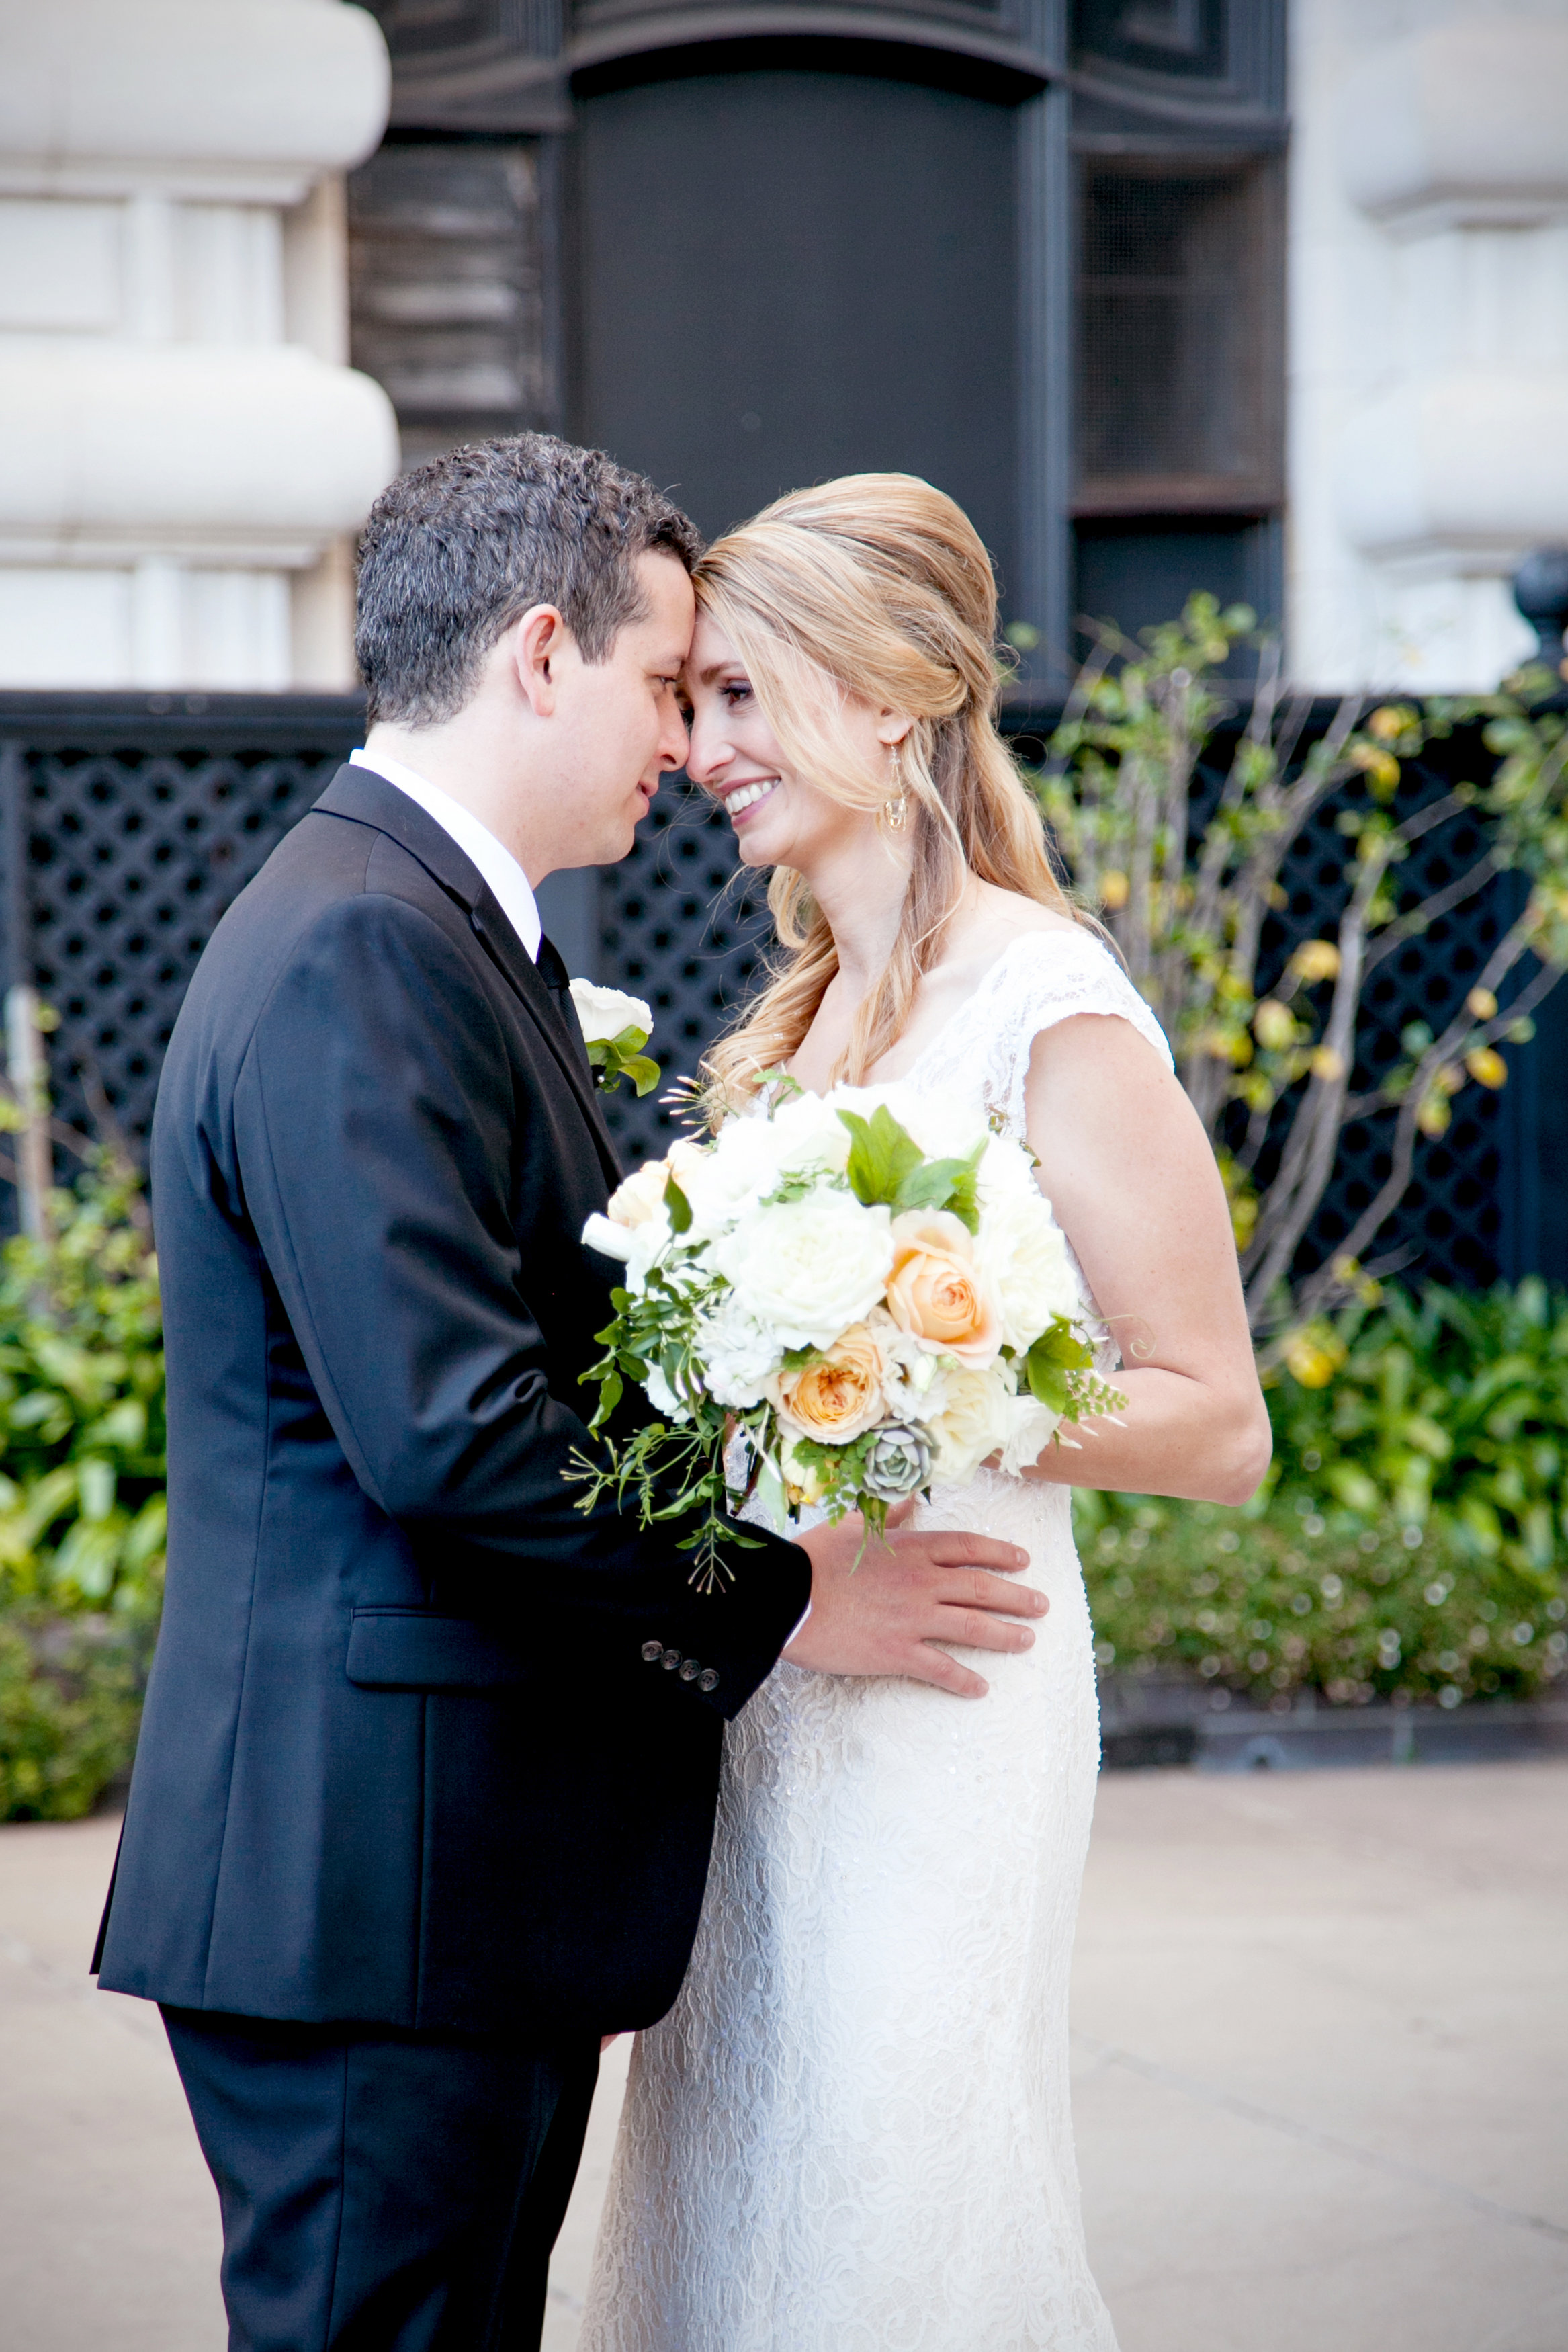 Classic Black and White Bride and Groom//Fairmont Hotel Wedding Bride and Groom San Francisco Meo Baaklini